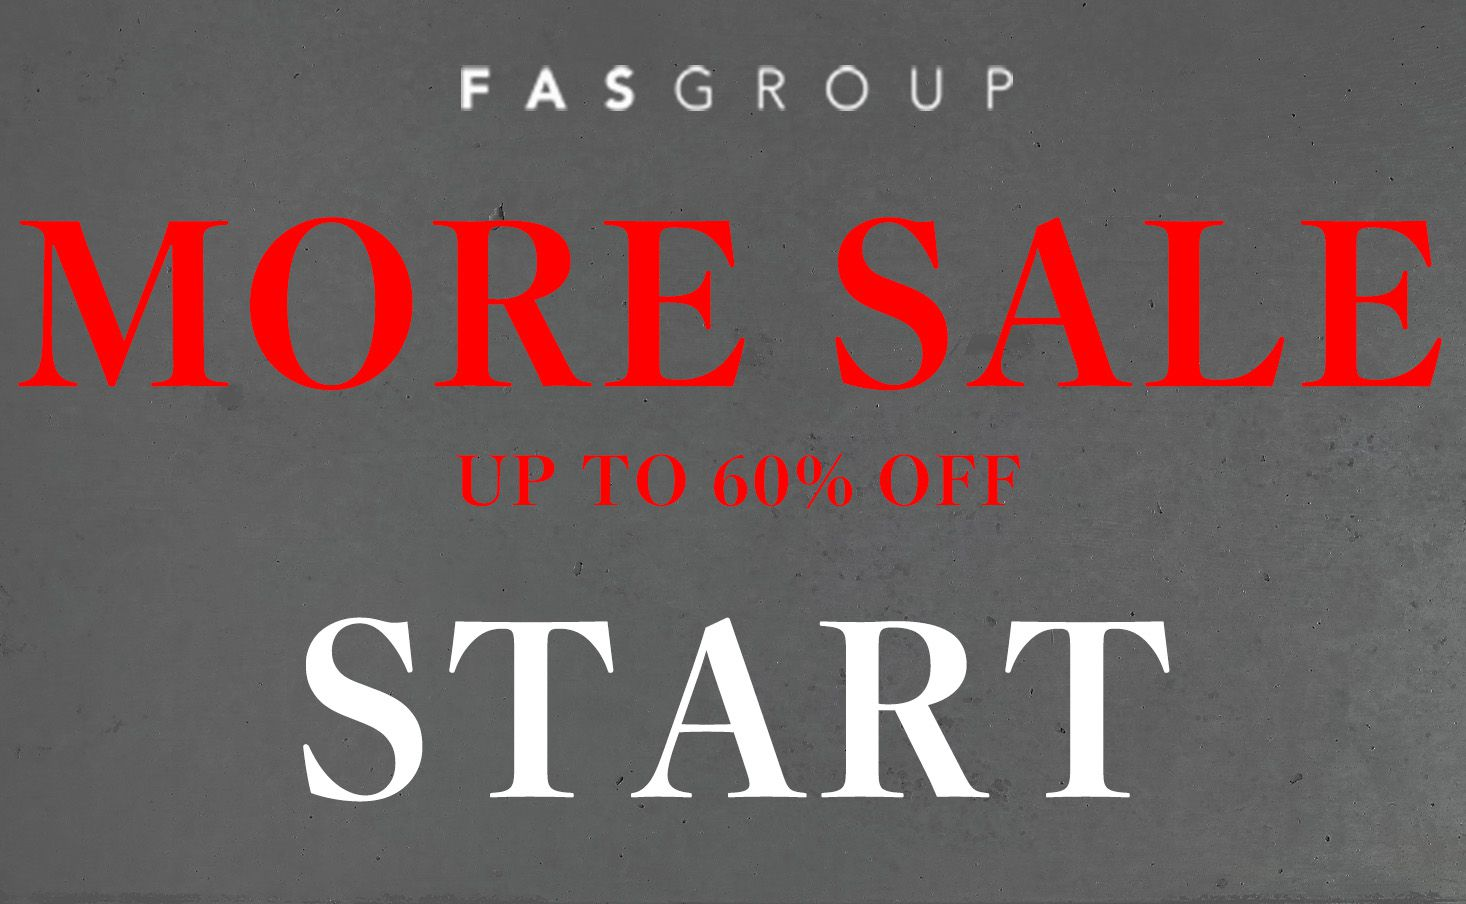 MORE SALE, starting 15th january 8PM (Japan Time)!